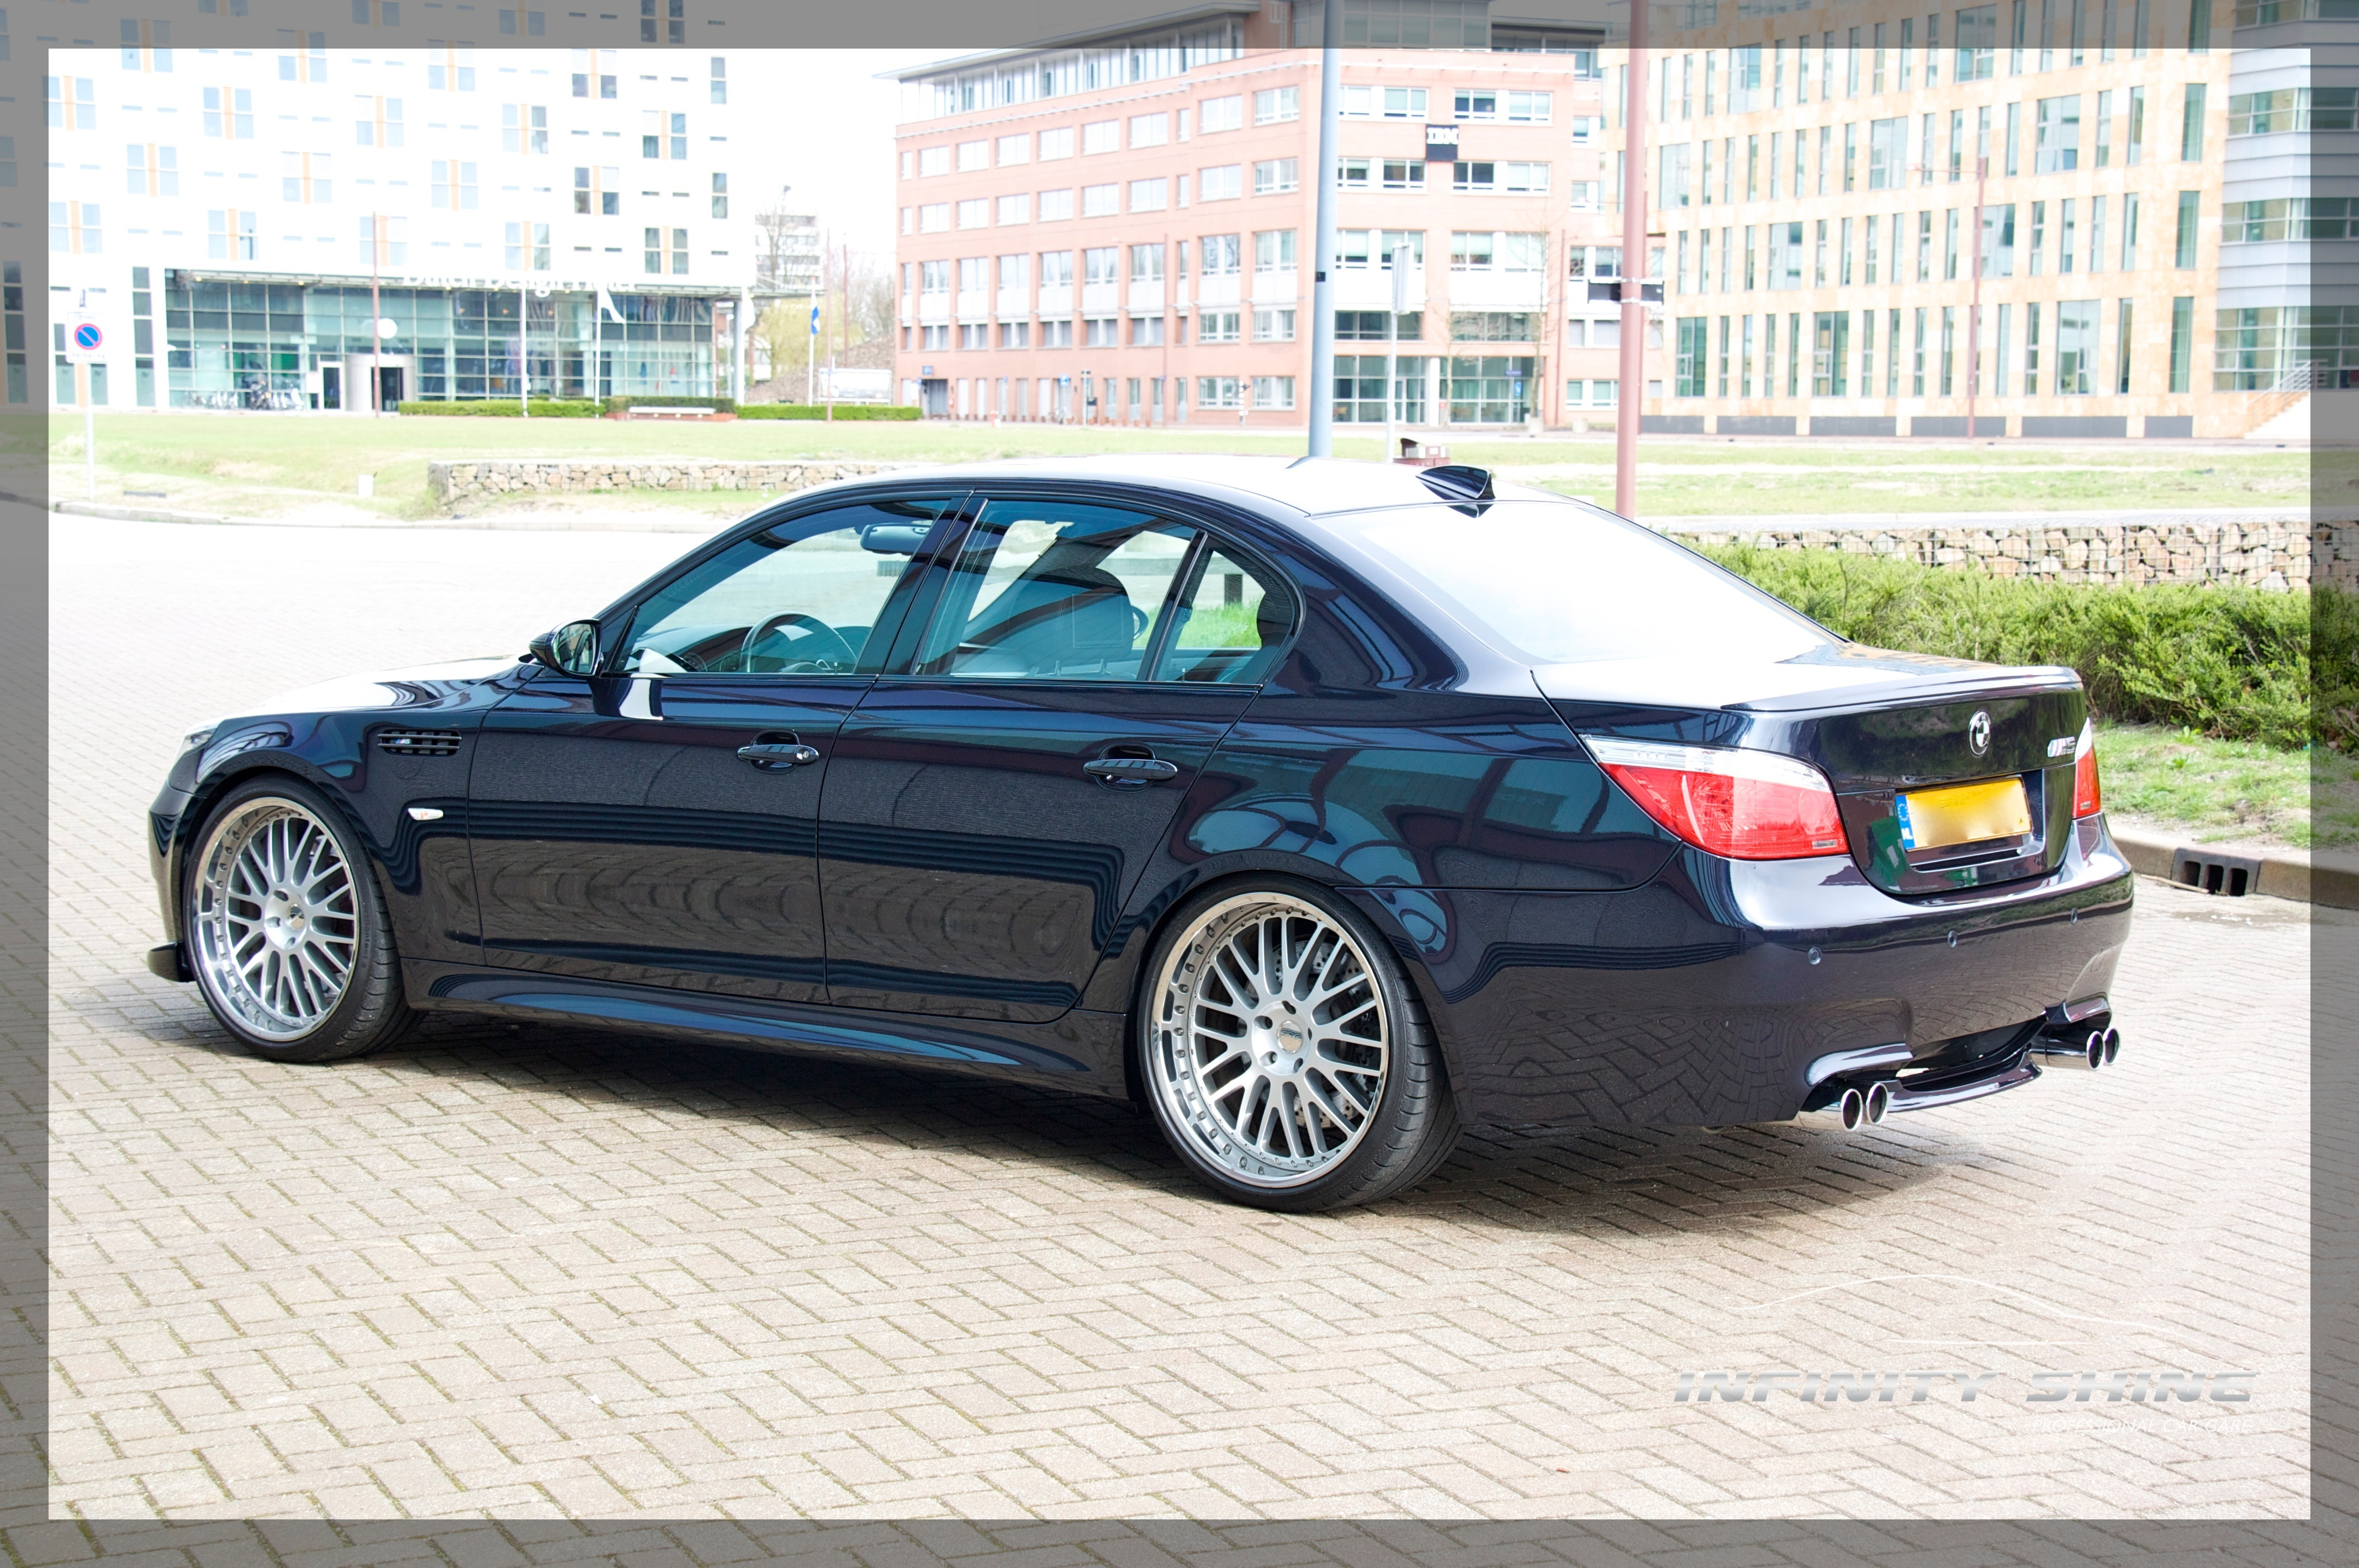 Member M Bitious Carbon Black Bmw M5 In The Netherlands